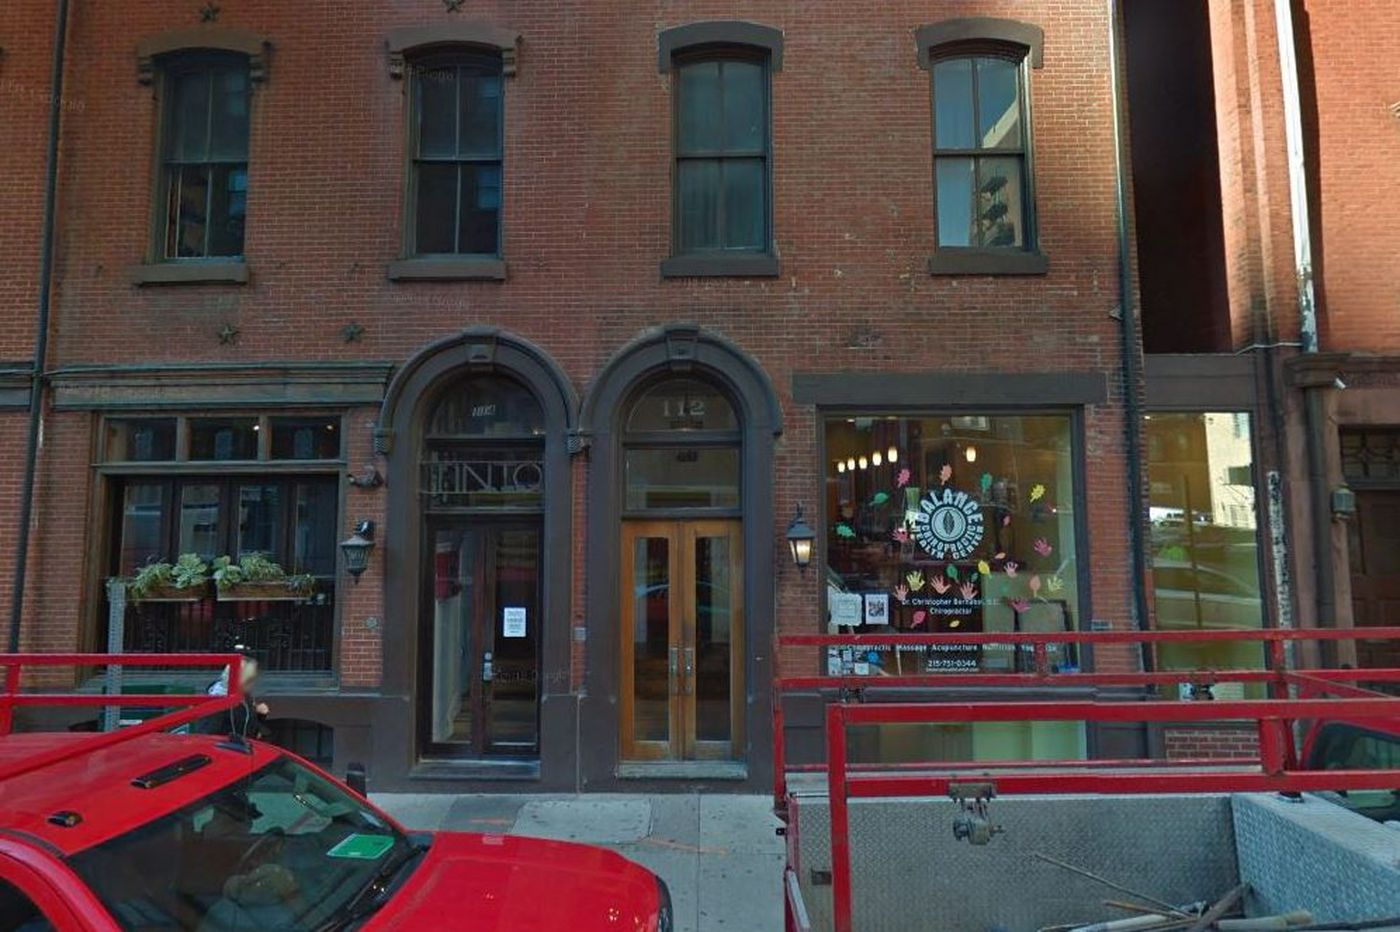 Tinto closed until Halloween for movie filming in Center City